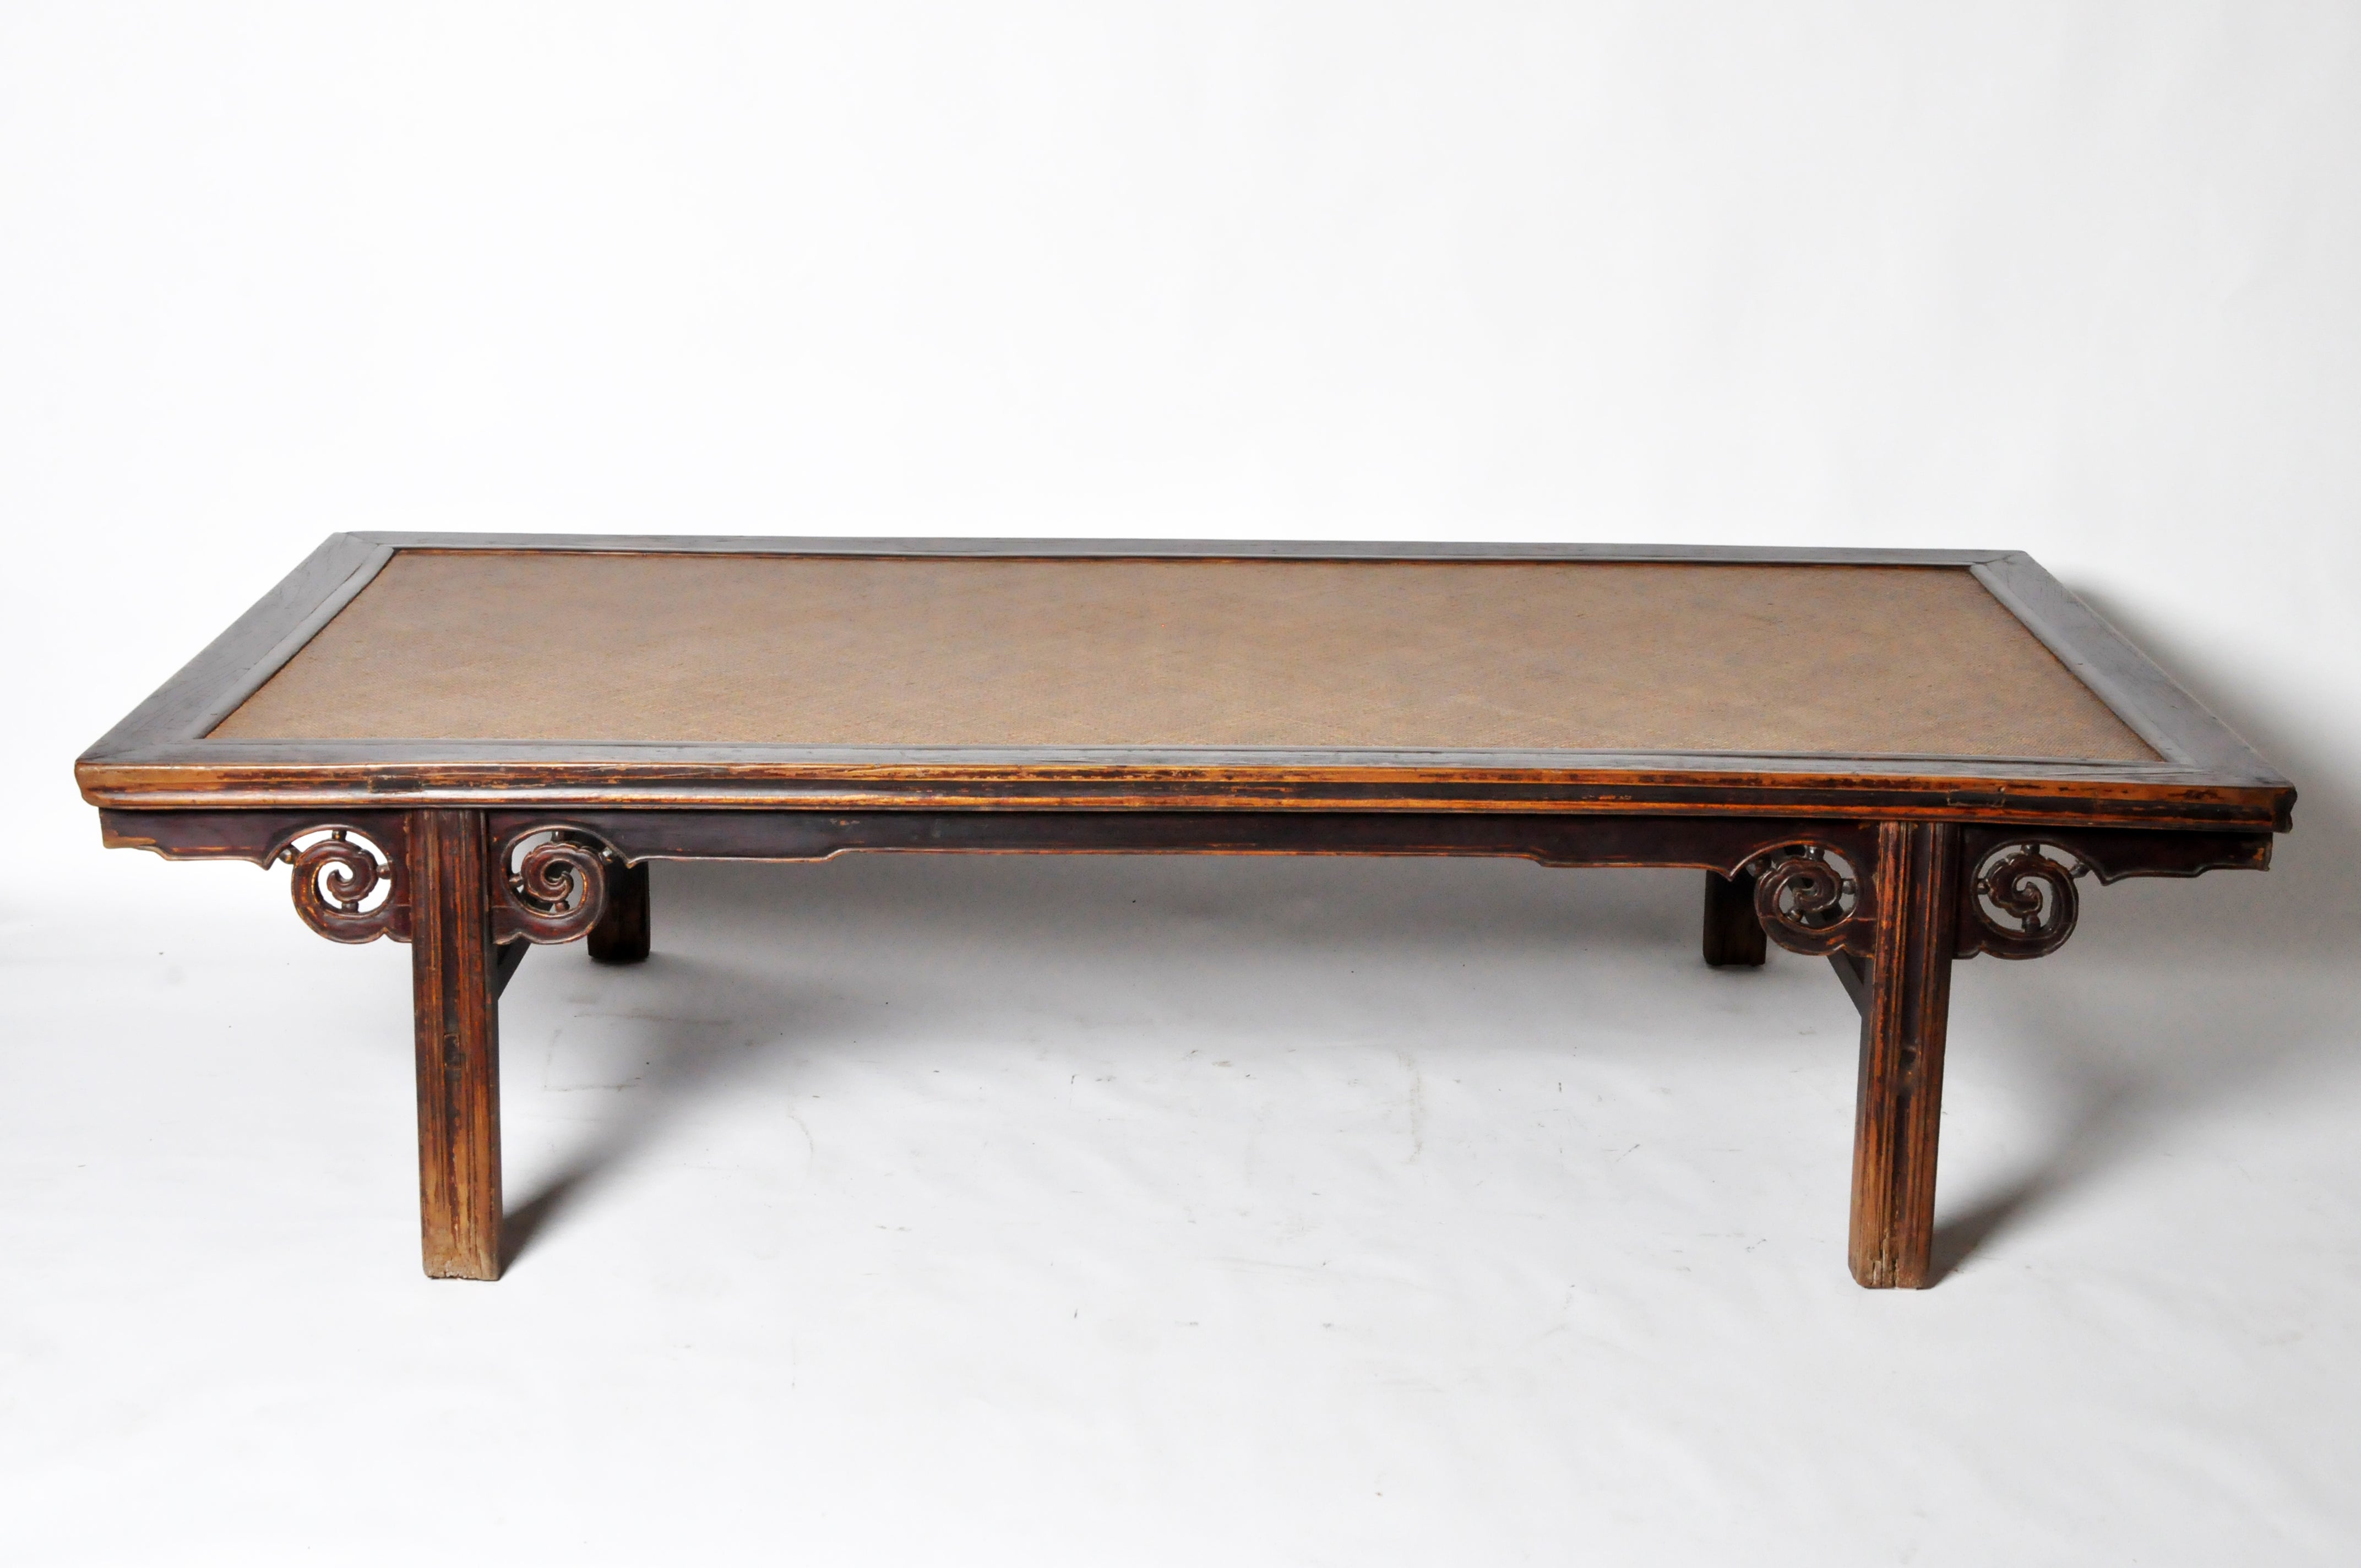 Attrayant Chinese Kang Table Or Daybed At 1stdibs